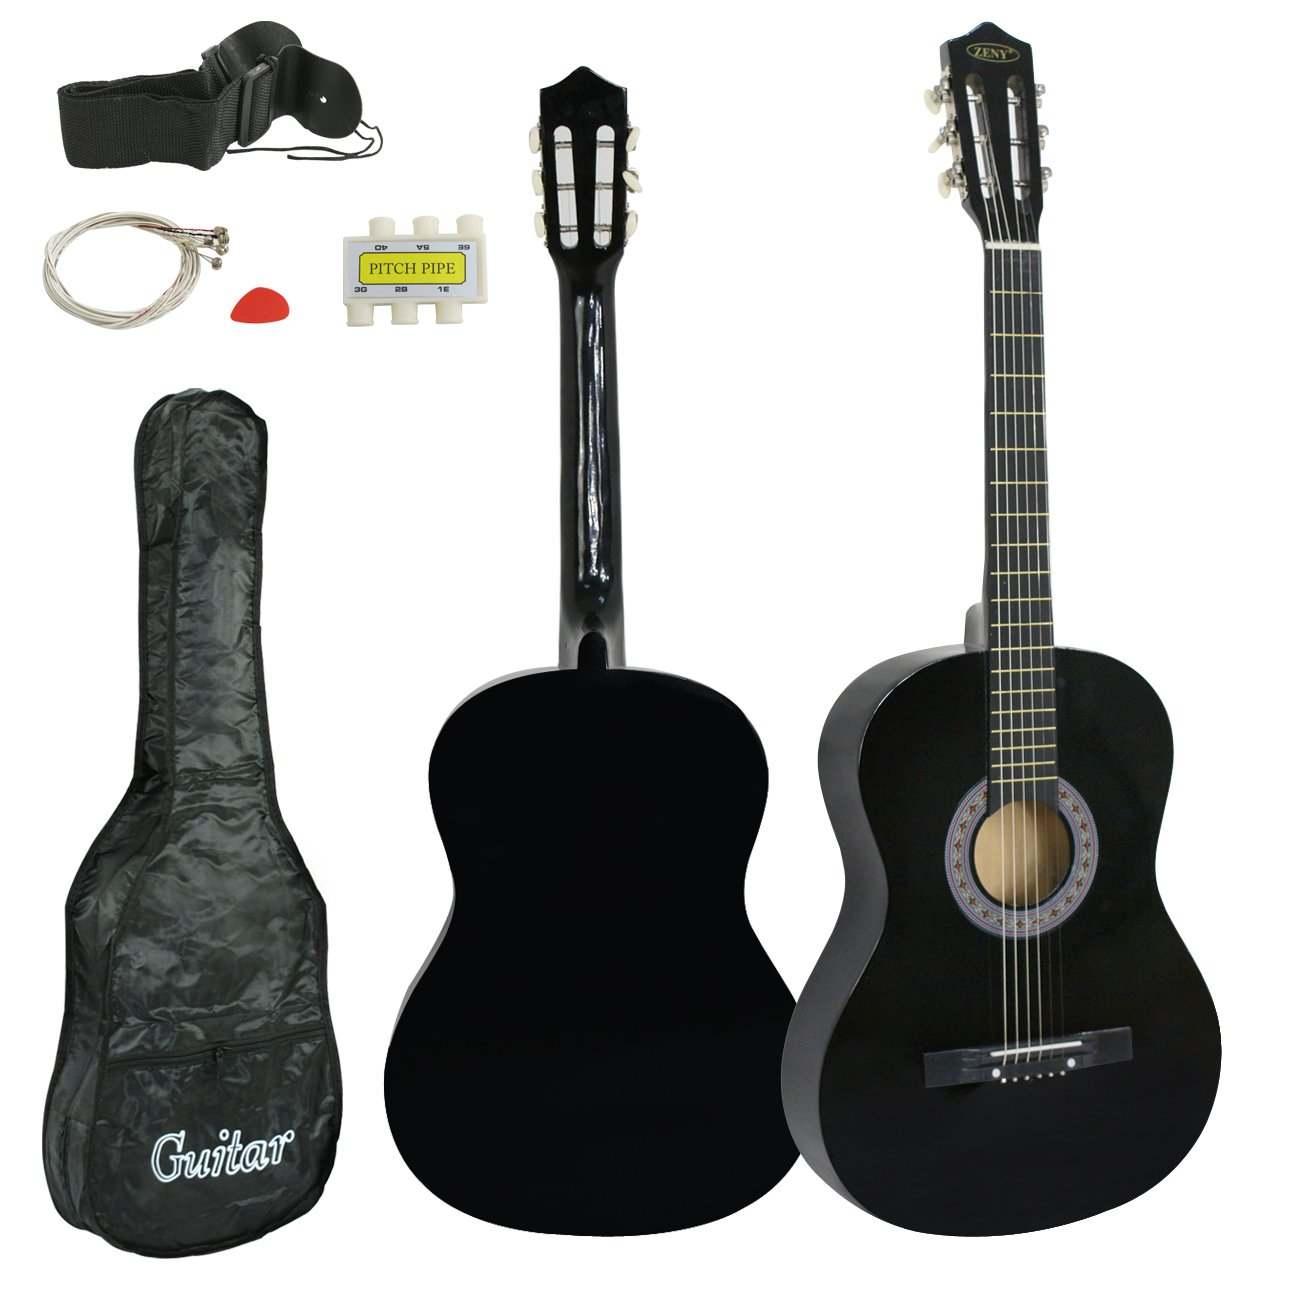 ZENY Beginners 38'' Acoustic Guitar Package Kit for Right-handed Starters Kids Music Lovers w/Case, Strap, Digital E-Tuner, and Pick, Black by ZENY (Image #3)